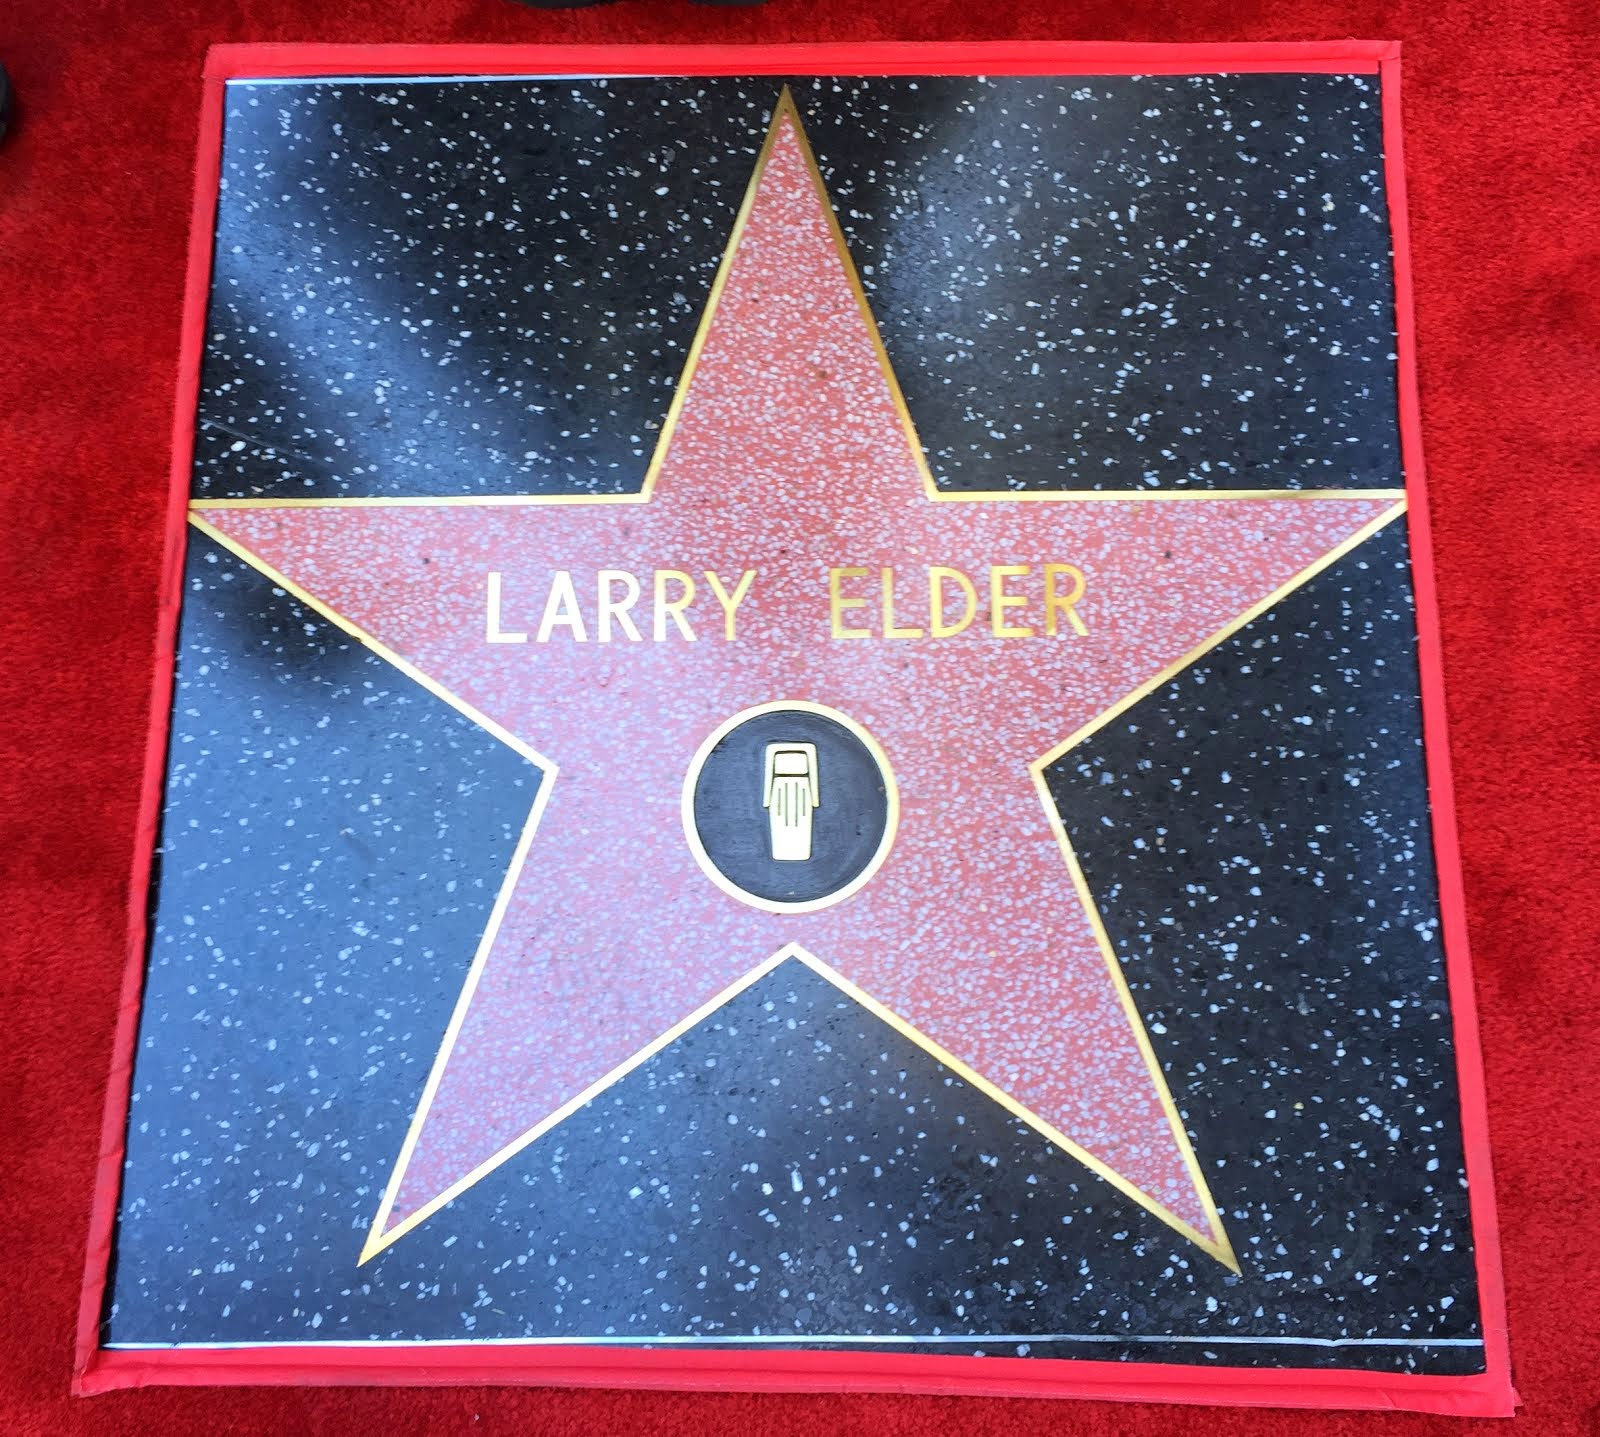 LARRY ELDER RECEIVES A STAR ON THE HOLLYWOOD WALK OF FAME, APRIL 27, 2015